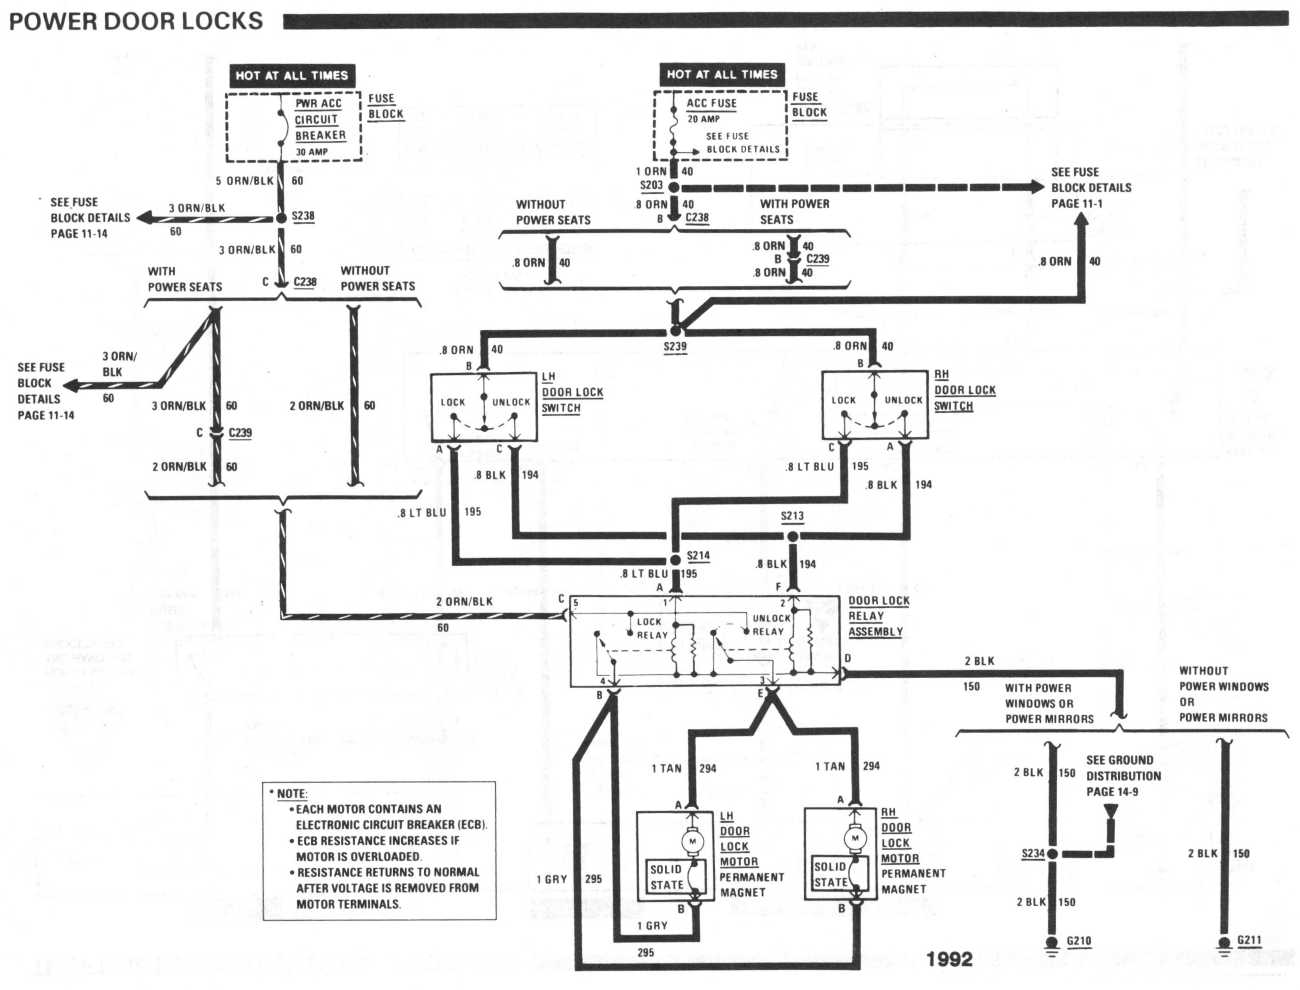 1994 chevy door lock wiring diagram power door locks not working at all - third generation f ...